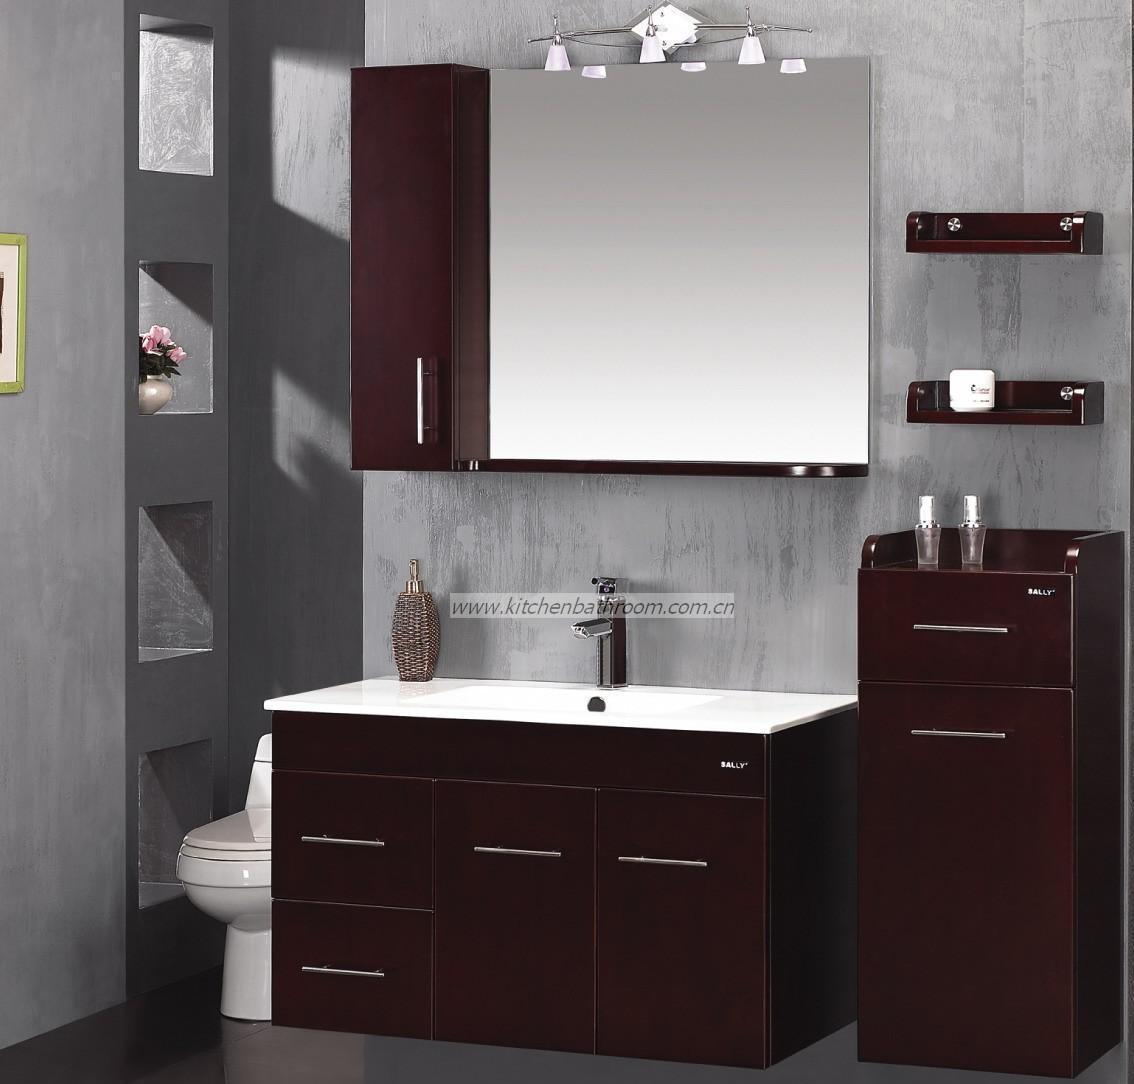 China bathroom cabinets yxbc 2022 china bathroom for Cupboards and cabinets